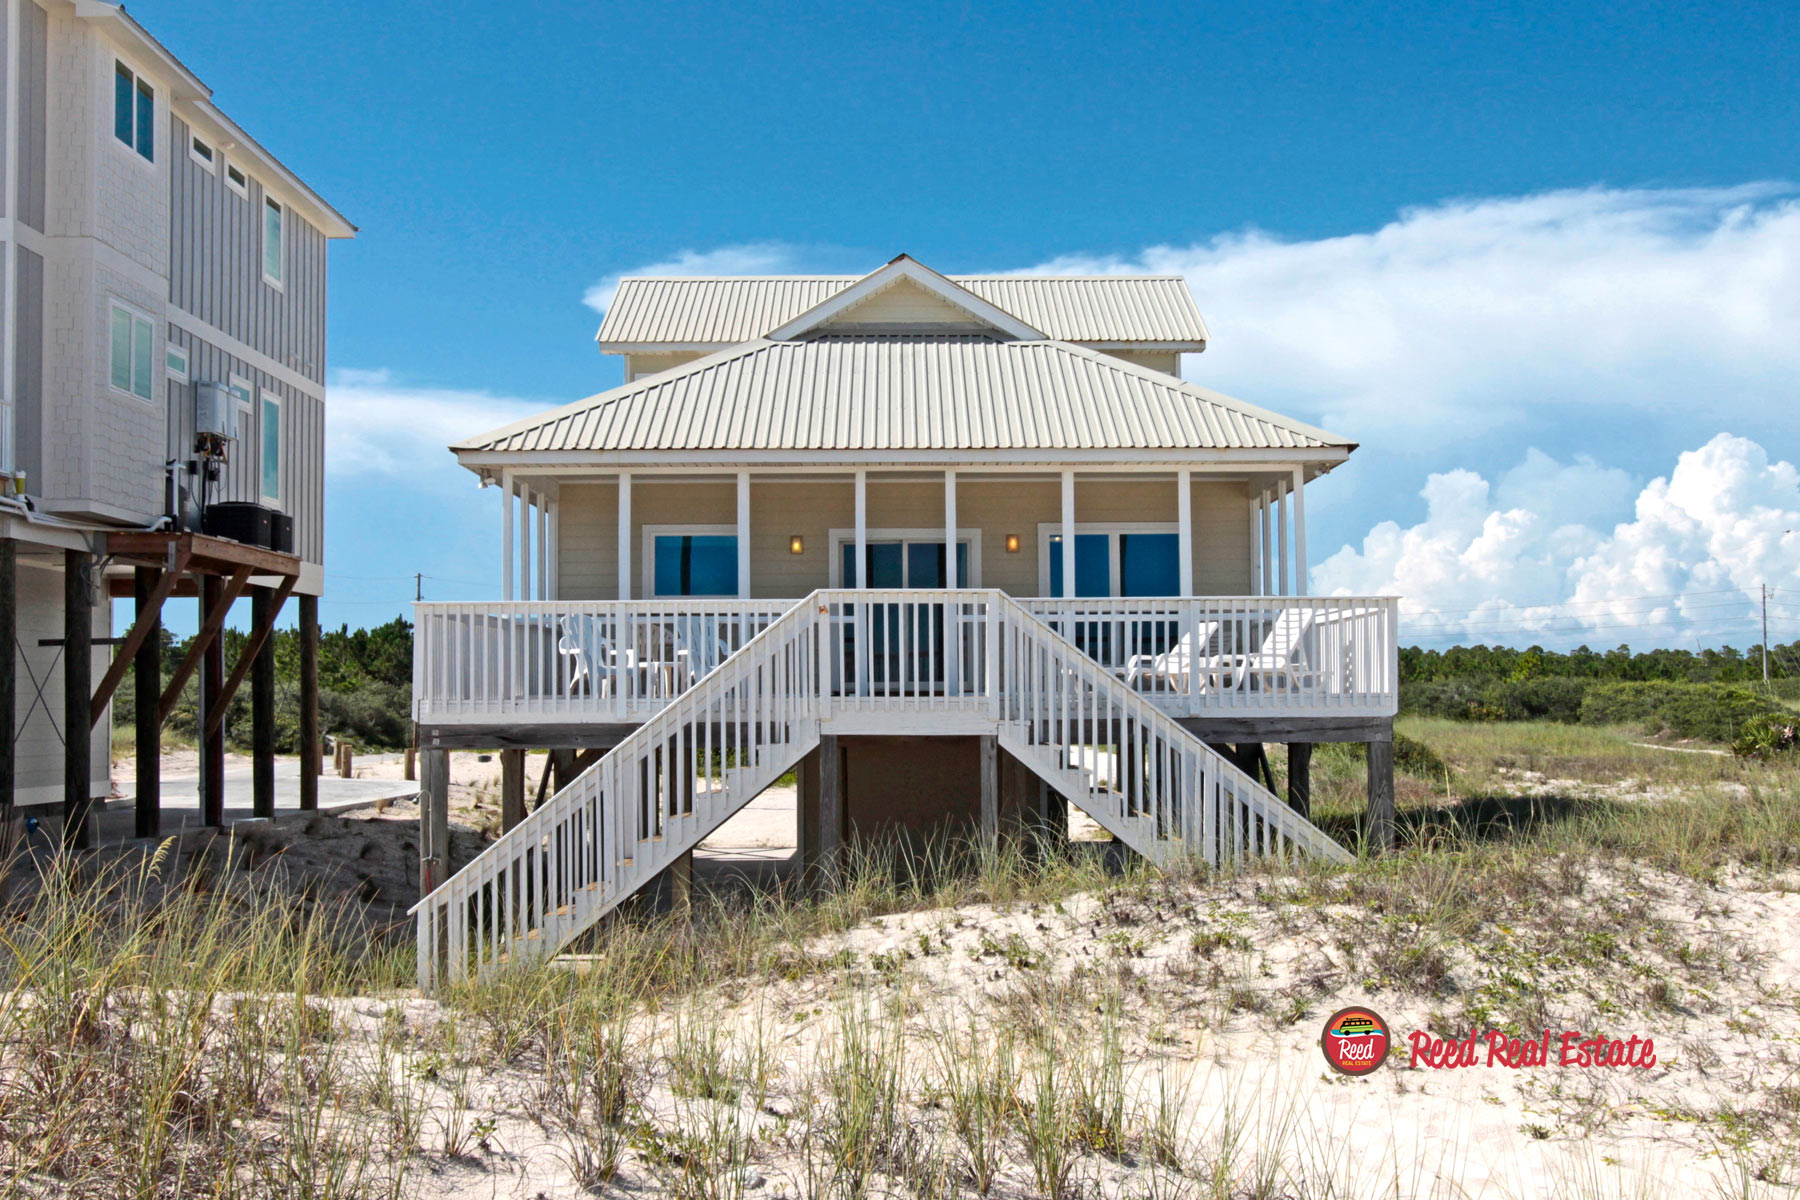 Kessler house vacation home for rent gulf shores alabama